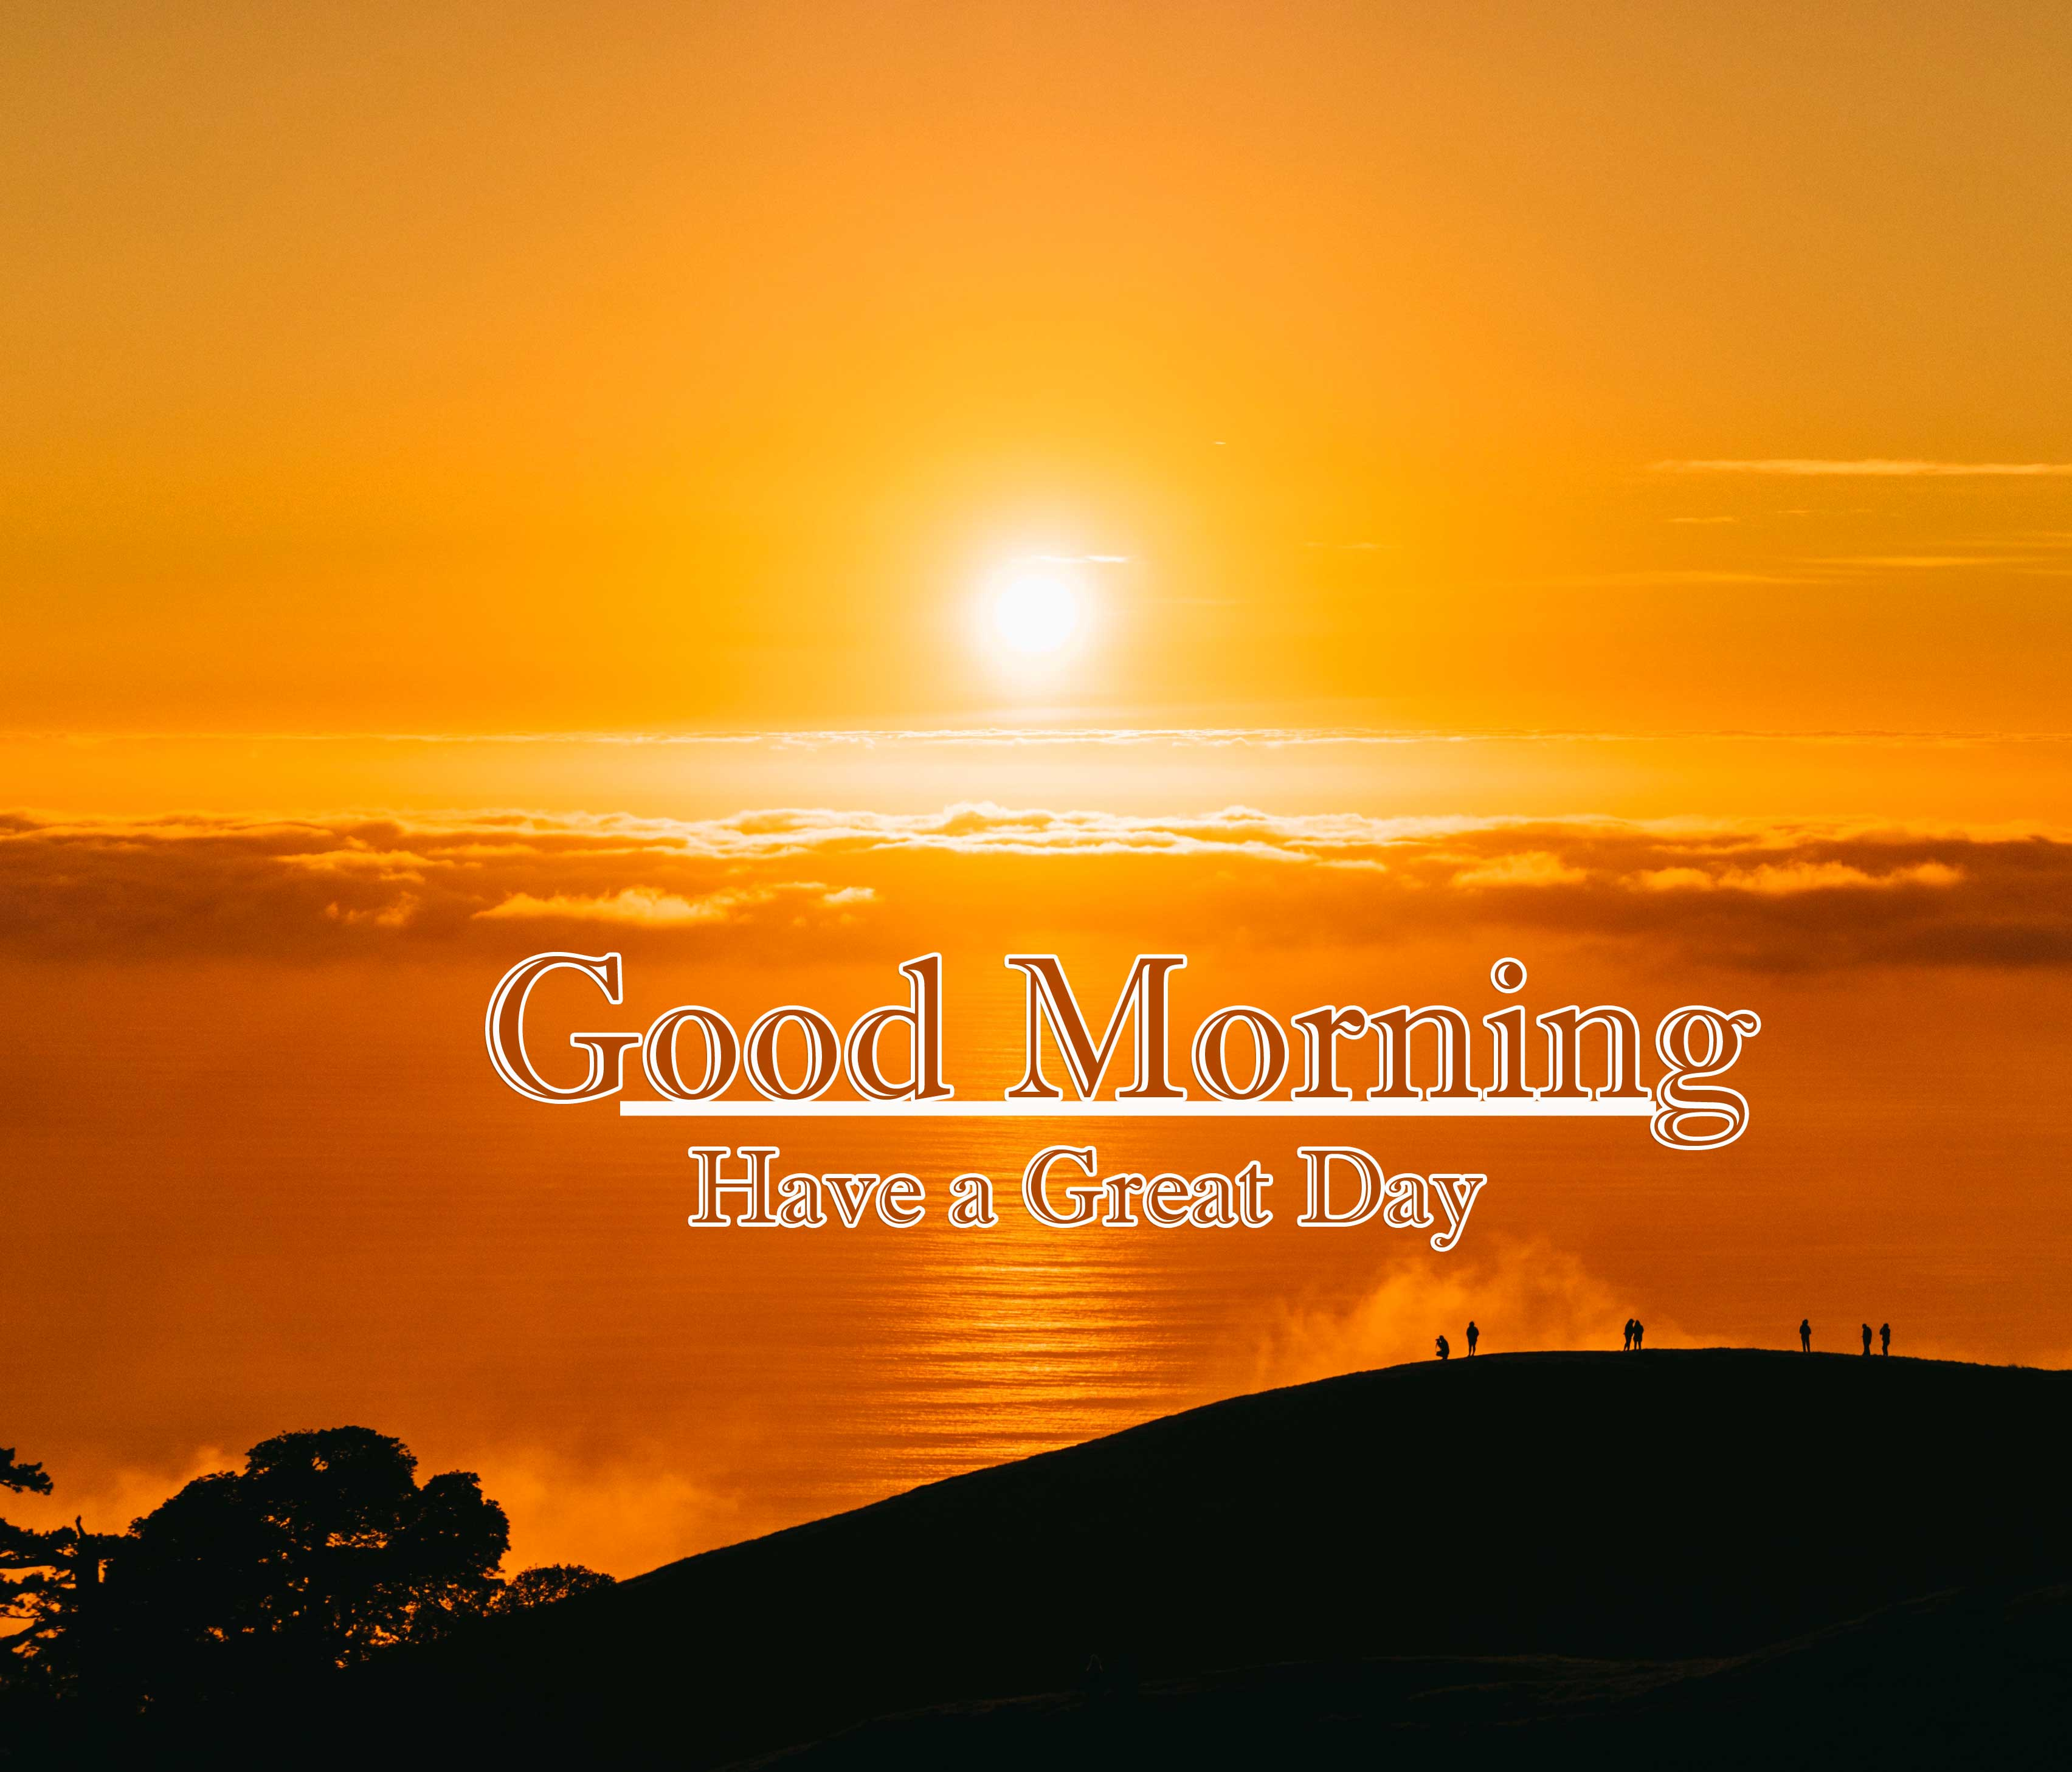 Good Morning Wishes With Sunrise Pics Wallpaper Download